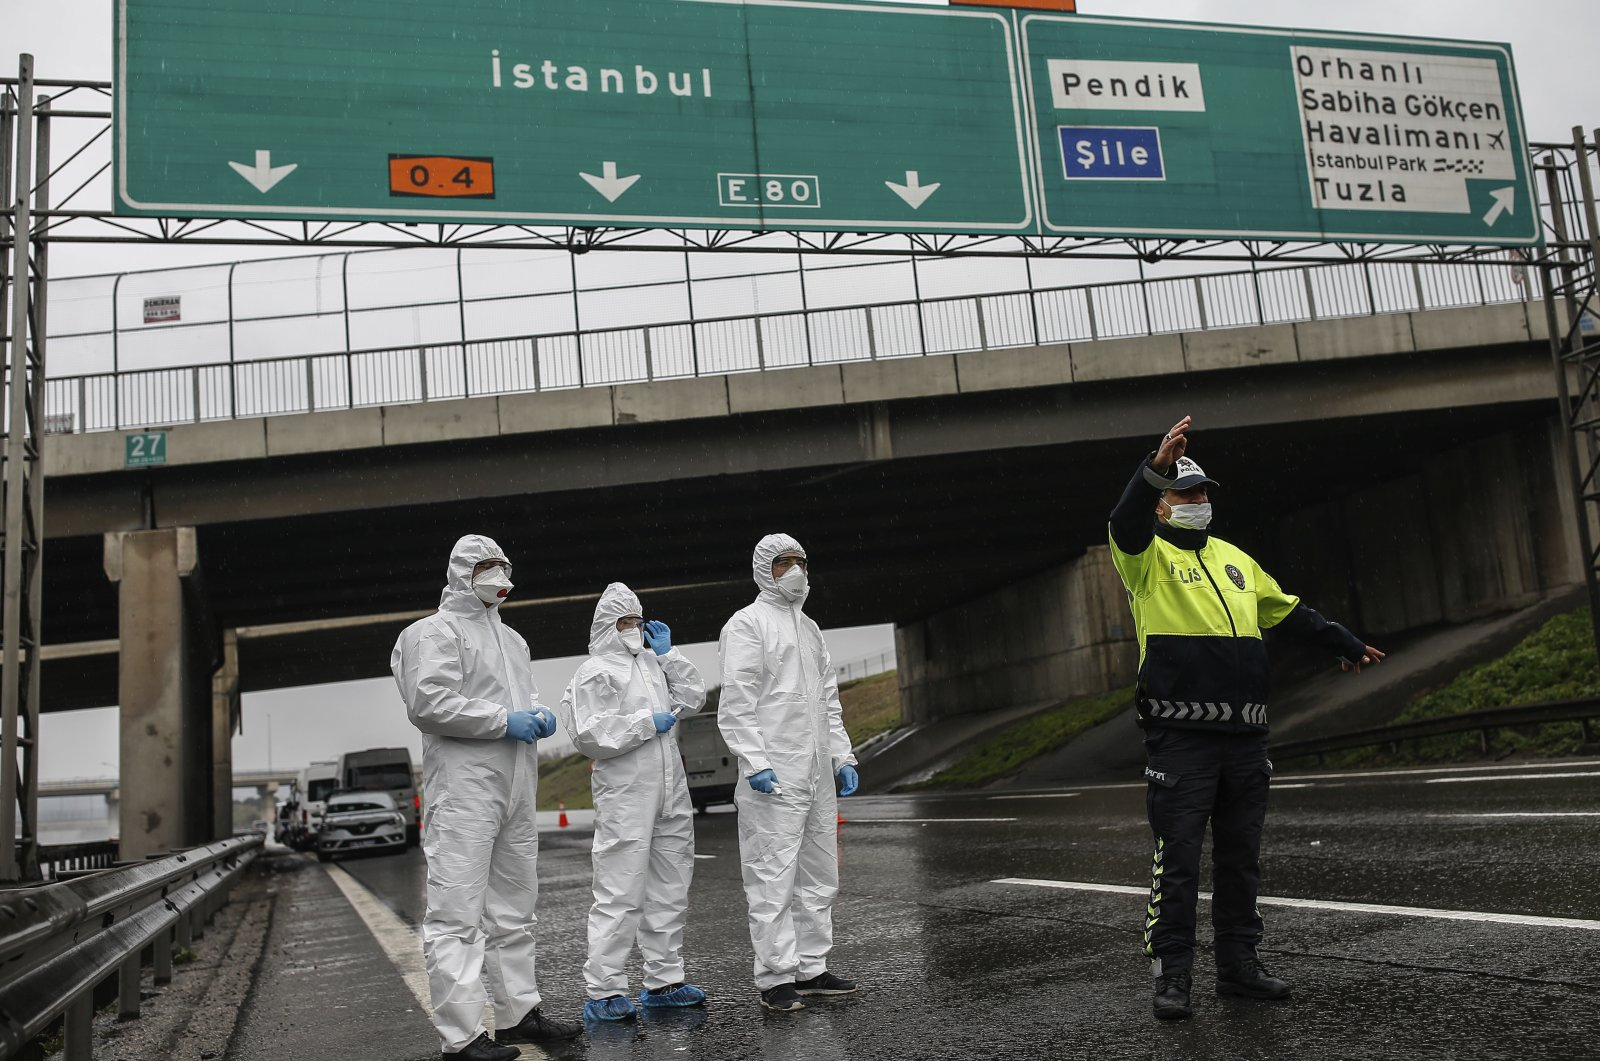 A police officer stops a bus so health officials could measure the body temperature of the passengers at a checkpoint, on the Asian side of Istanbul, Sunday, March 29, 2020. (AP Photo)